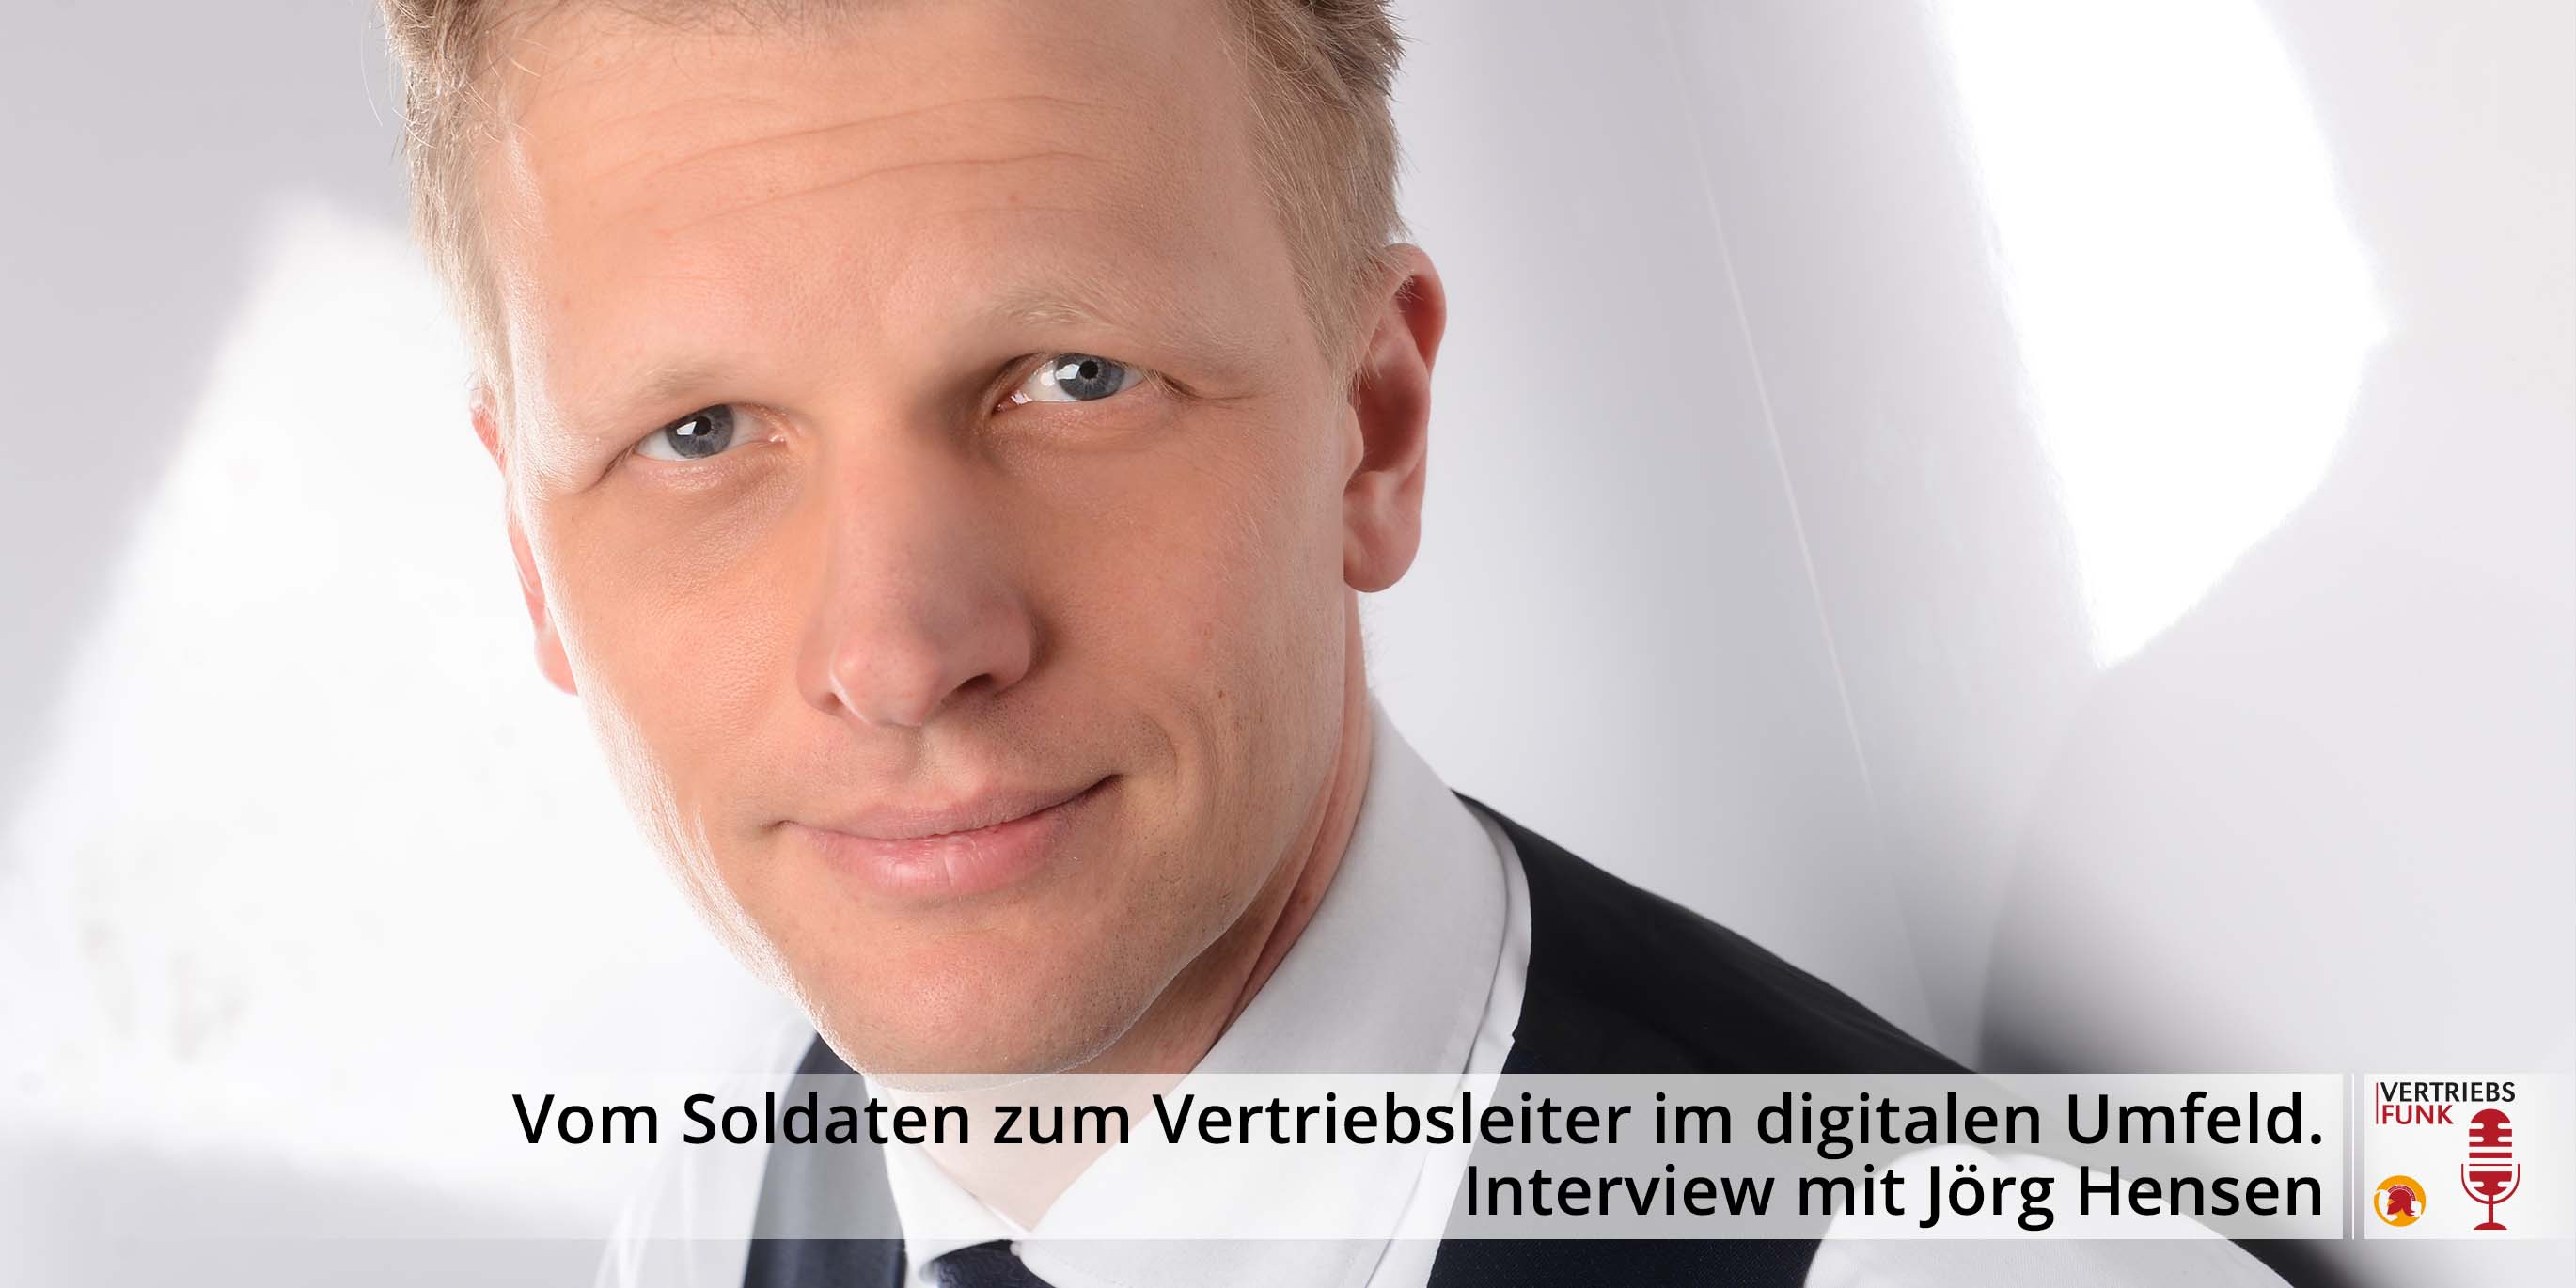 VertriebsFunk Episode 285 – Innovative Software und Artificial Intelligence – vom Soldaten zum Vertriebsleiter im digitalen Umfeld. Interview mit Jörg Hensen_AB